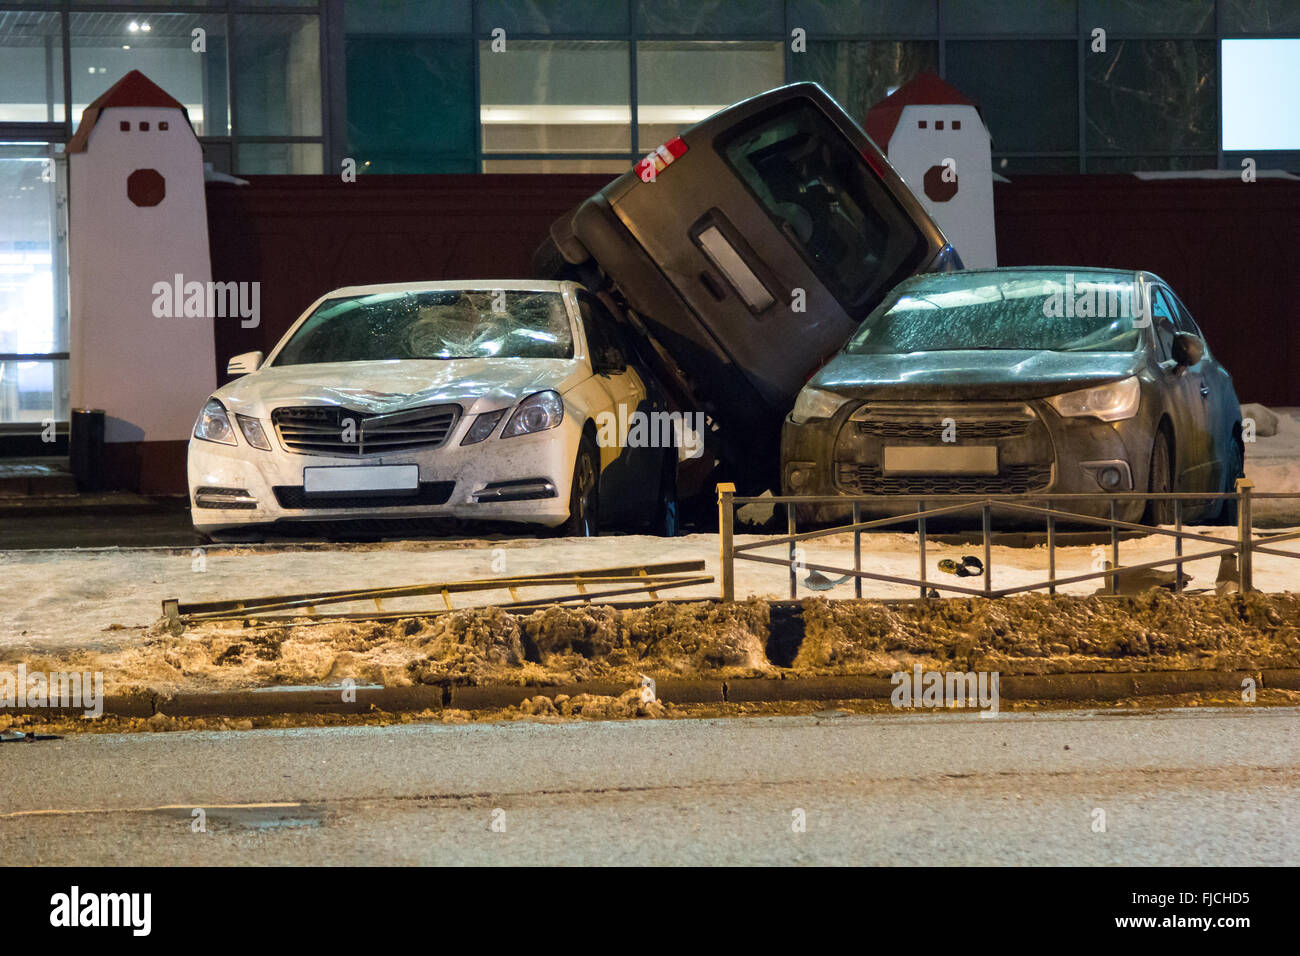 car parked on the roof of the other two - Stock Image